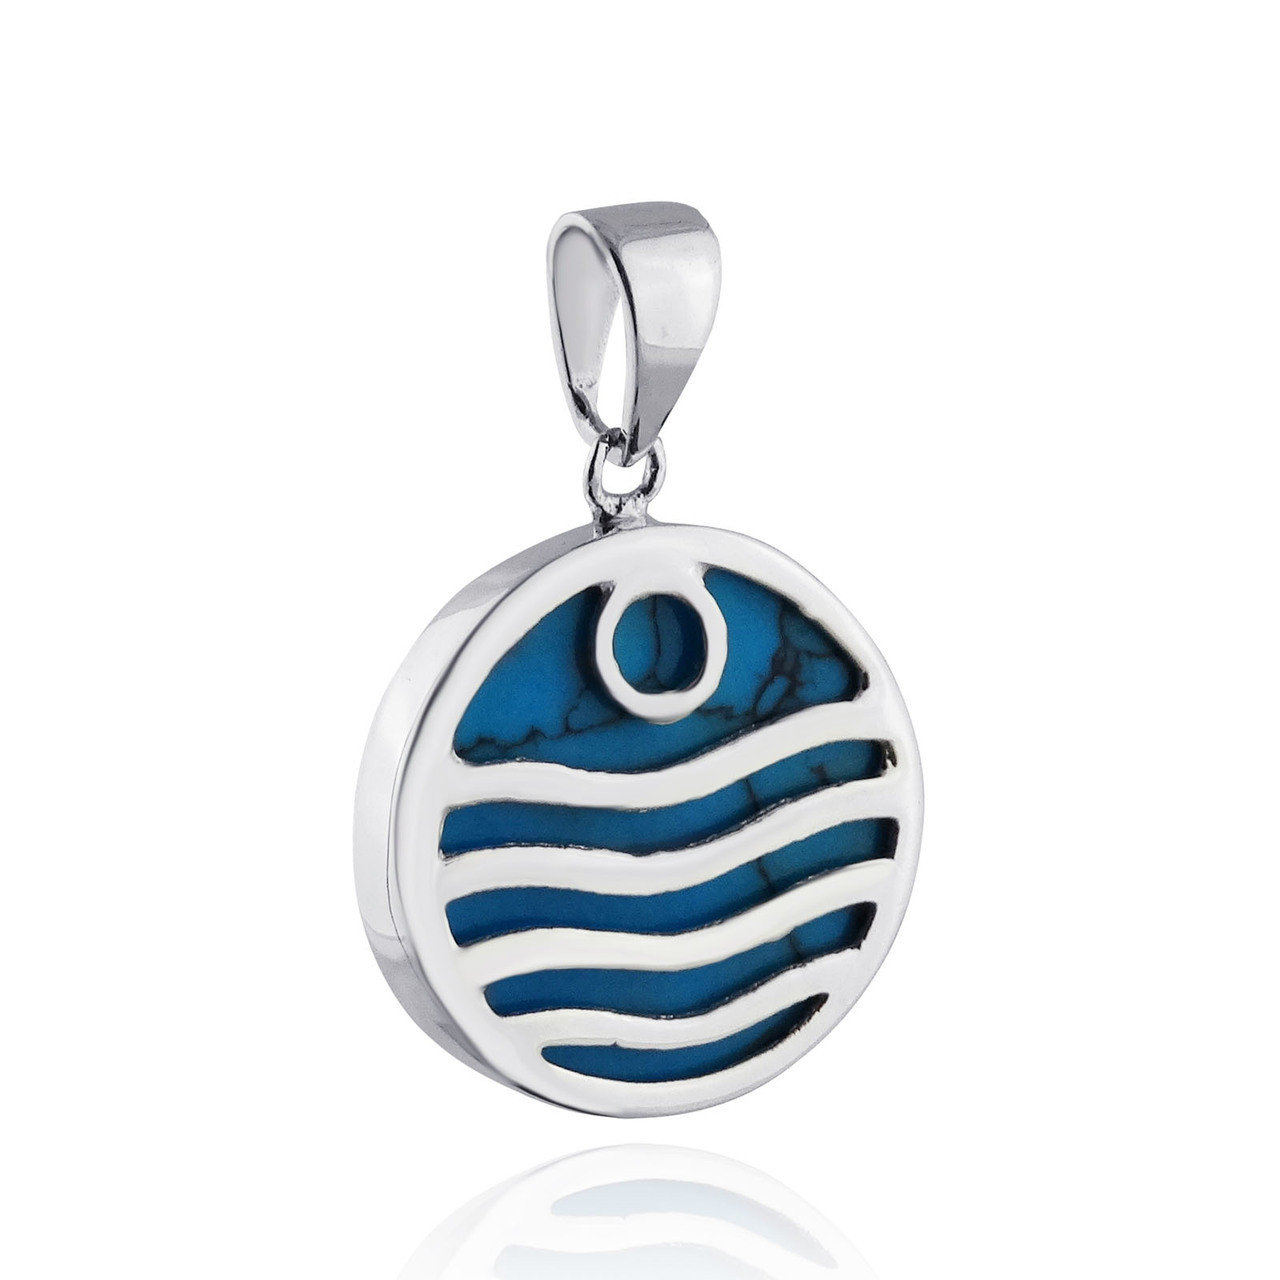 surfer reminder surfboard surfing a jewelry surf this very ocean pendant pin is its necklace romantic wave the